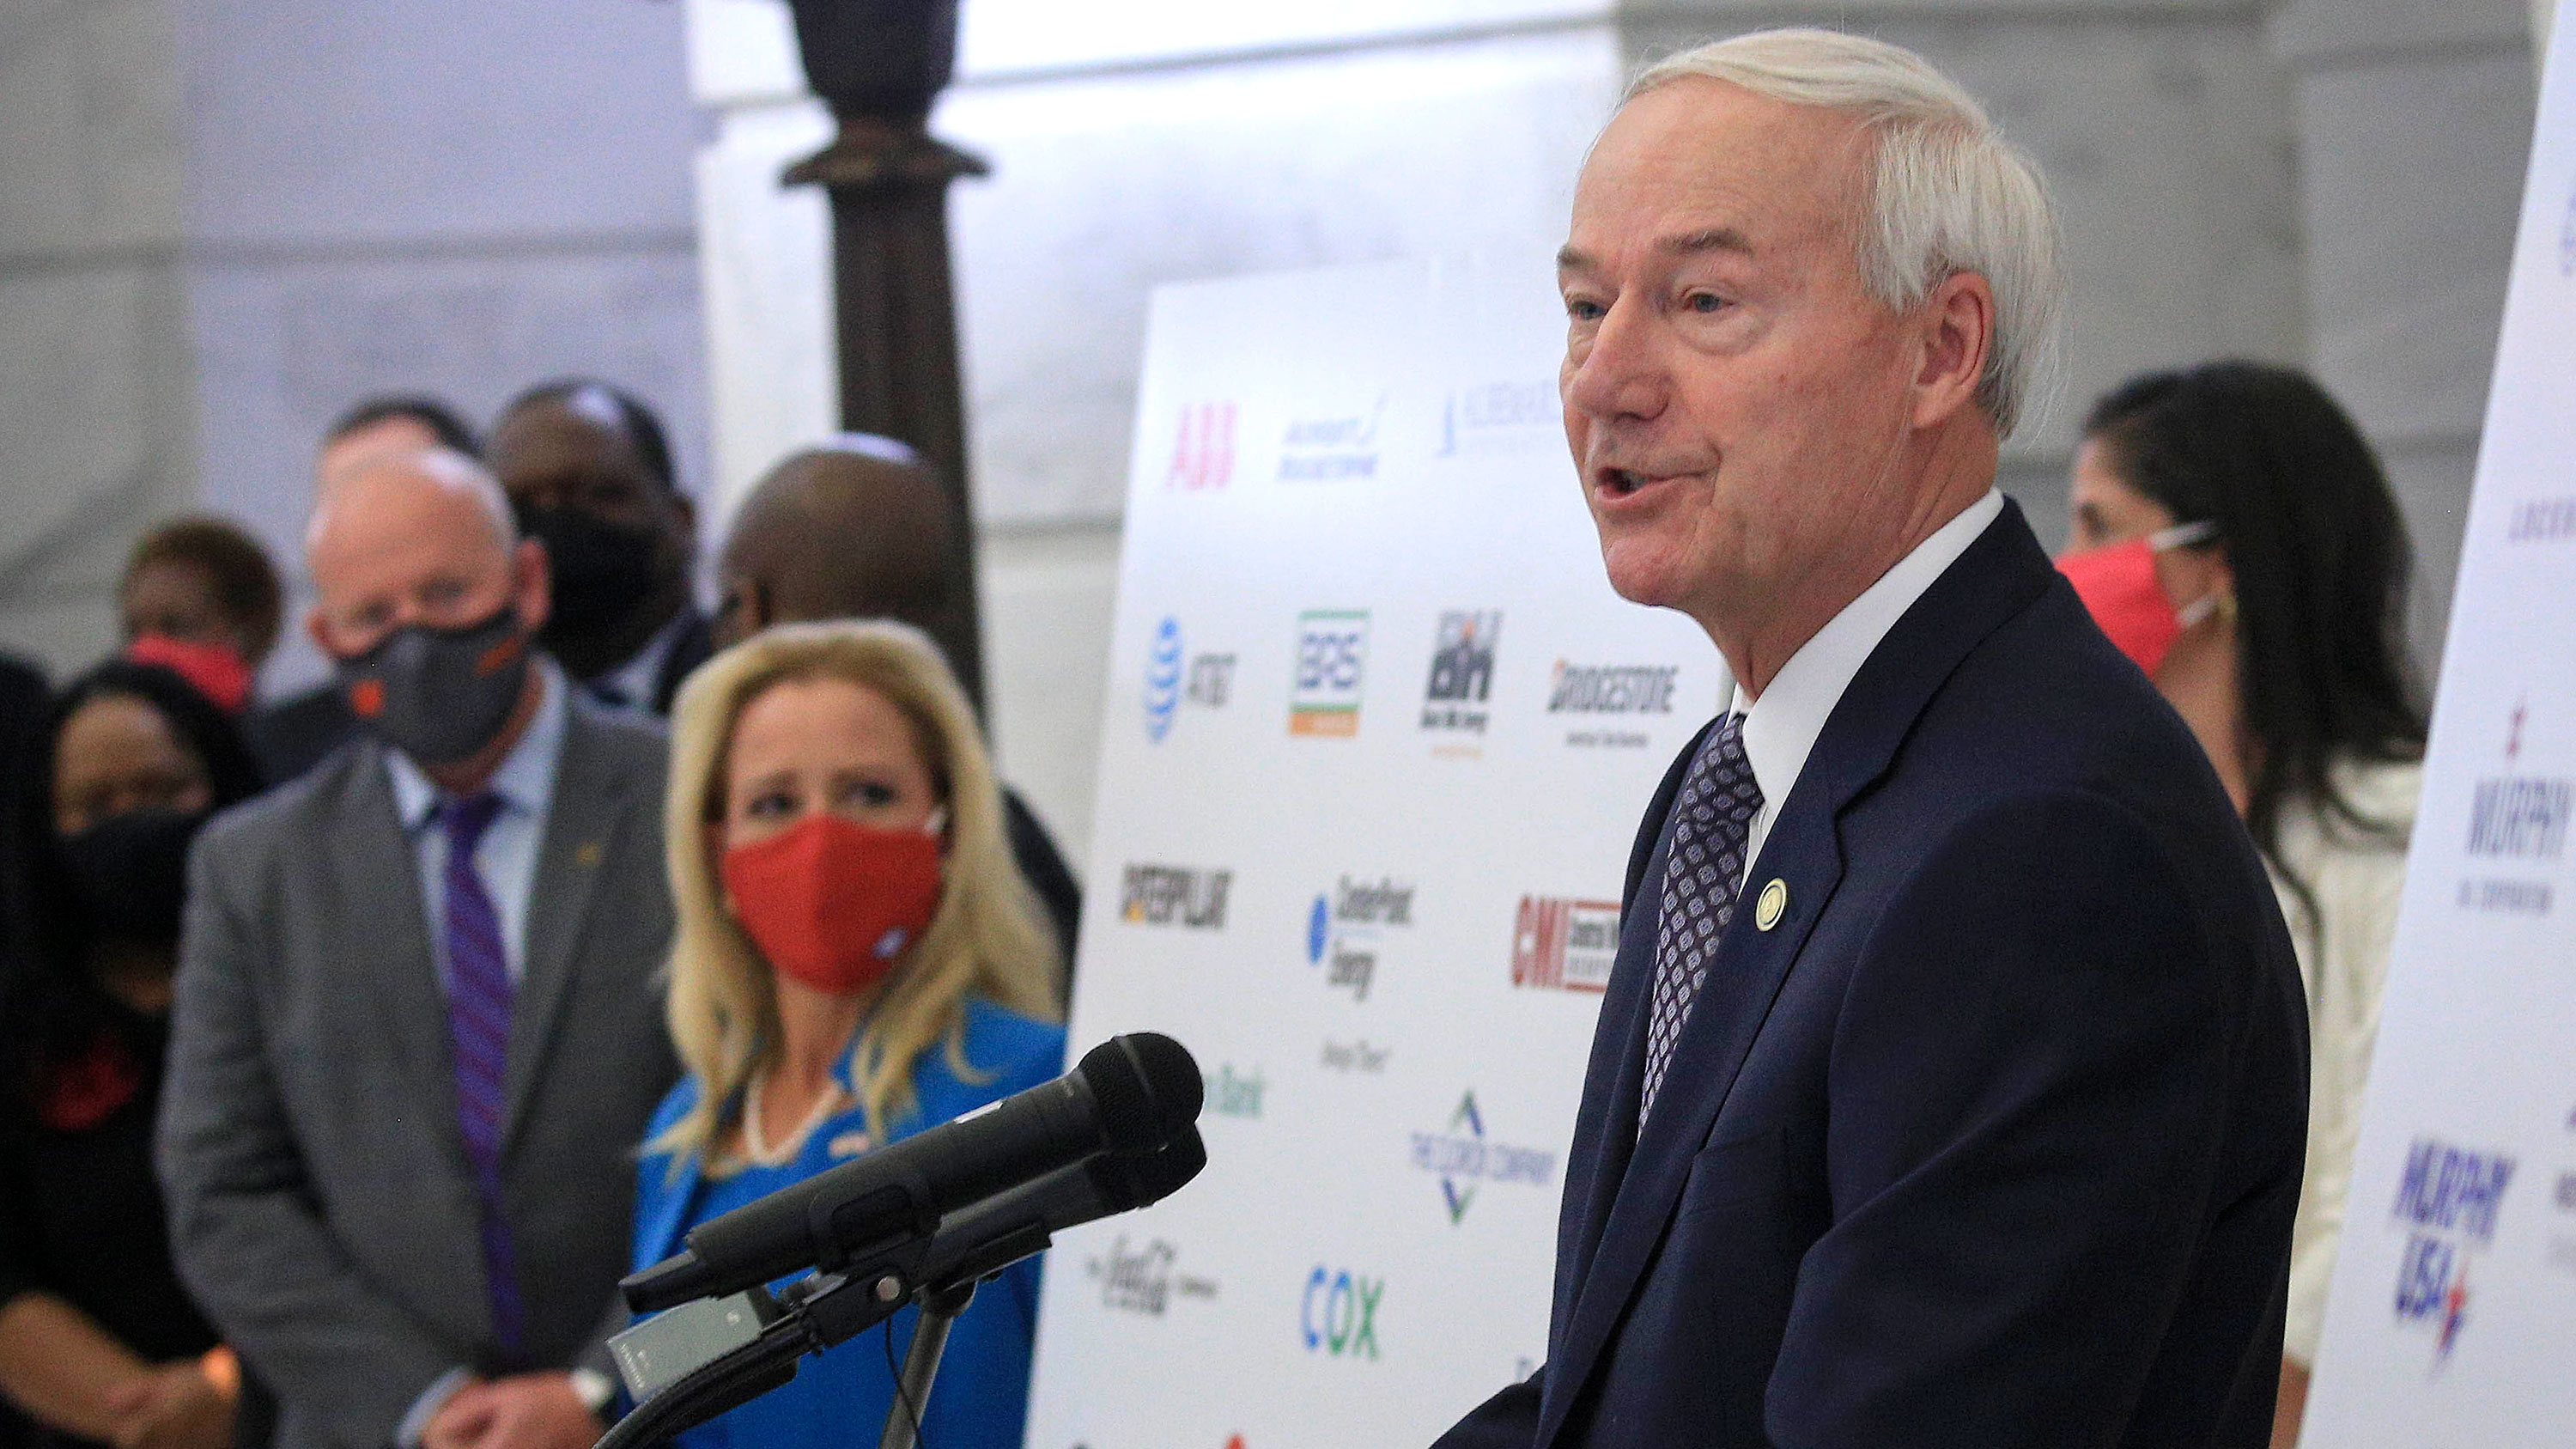 Arkansas Gov. Asa Hutchinson speaks during a press conference on August 19 in Little Rock, Arkansas.